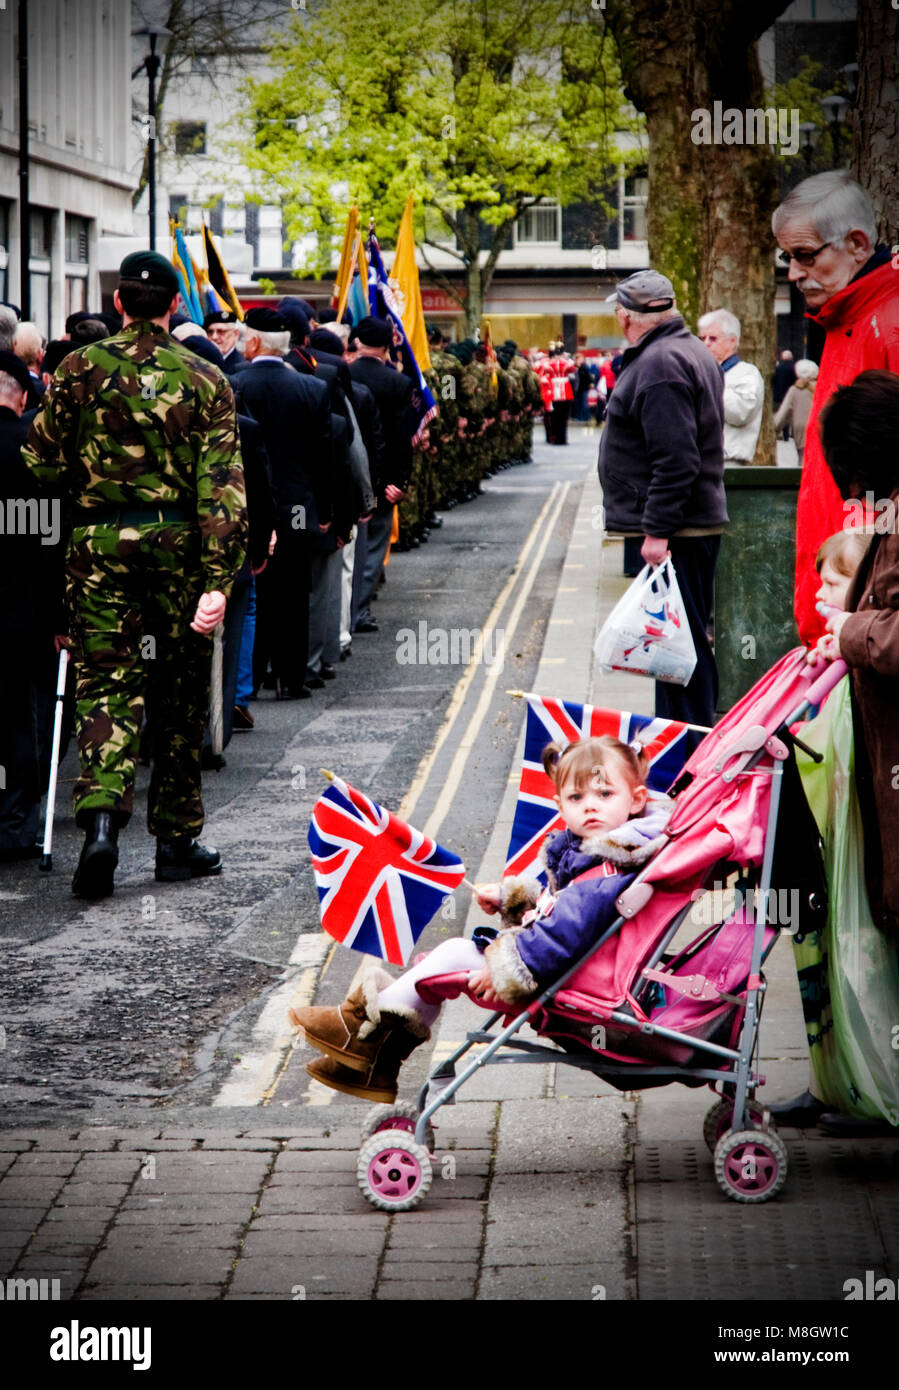 A little girl looks less than impressed at a military parade in Gloucester - Stock Image